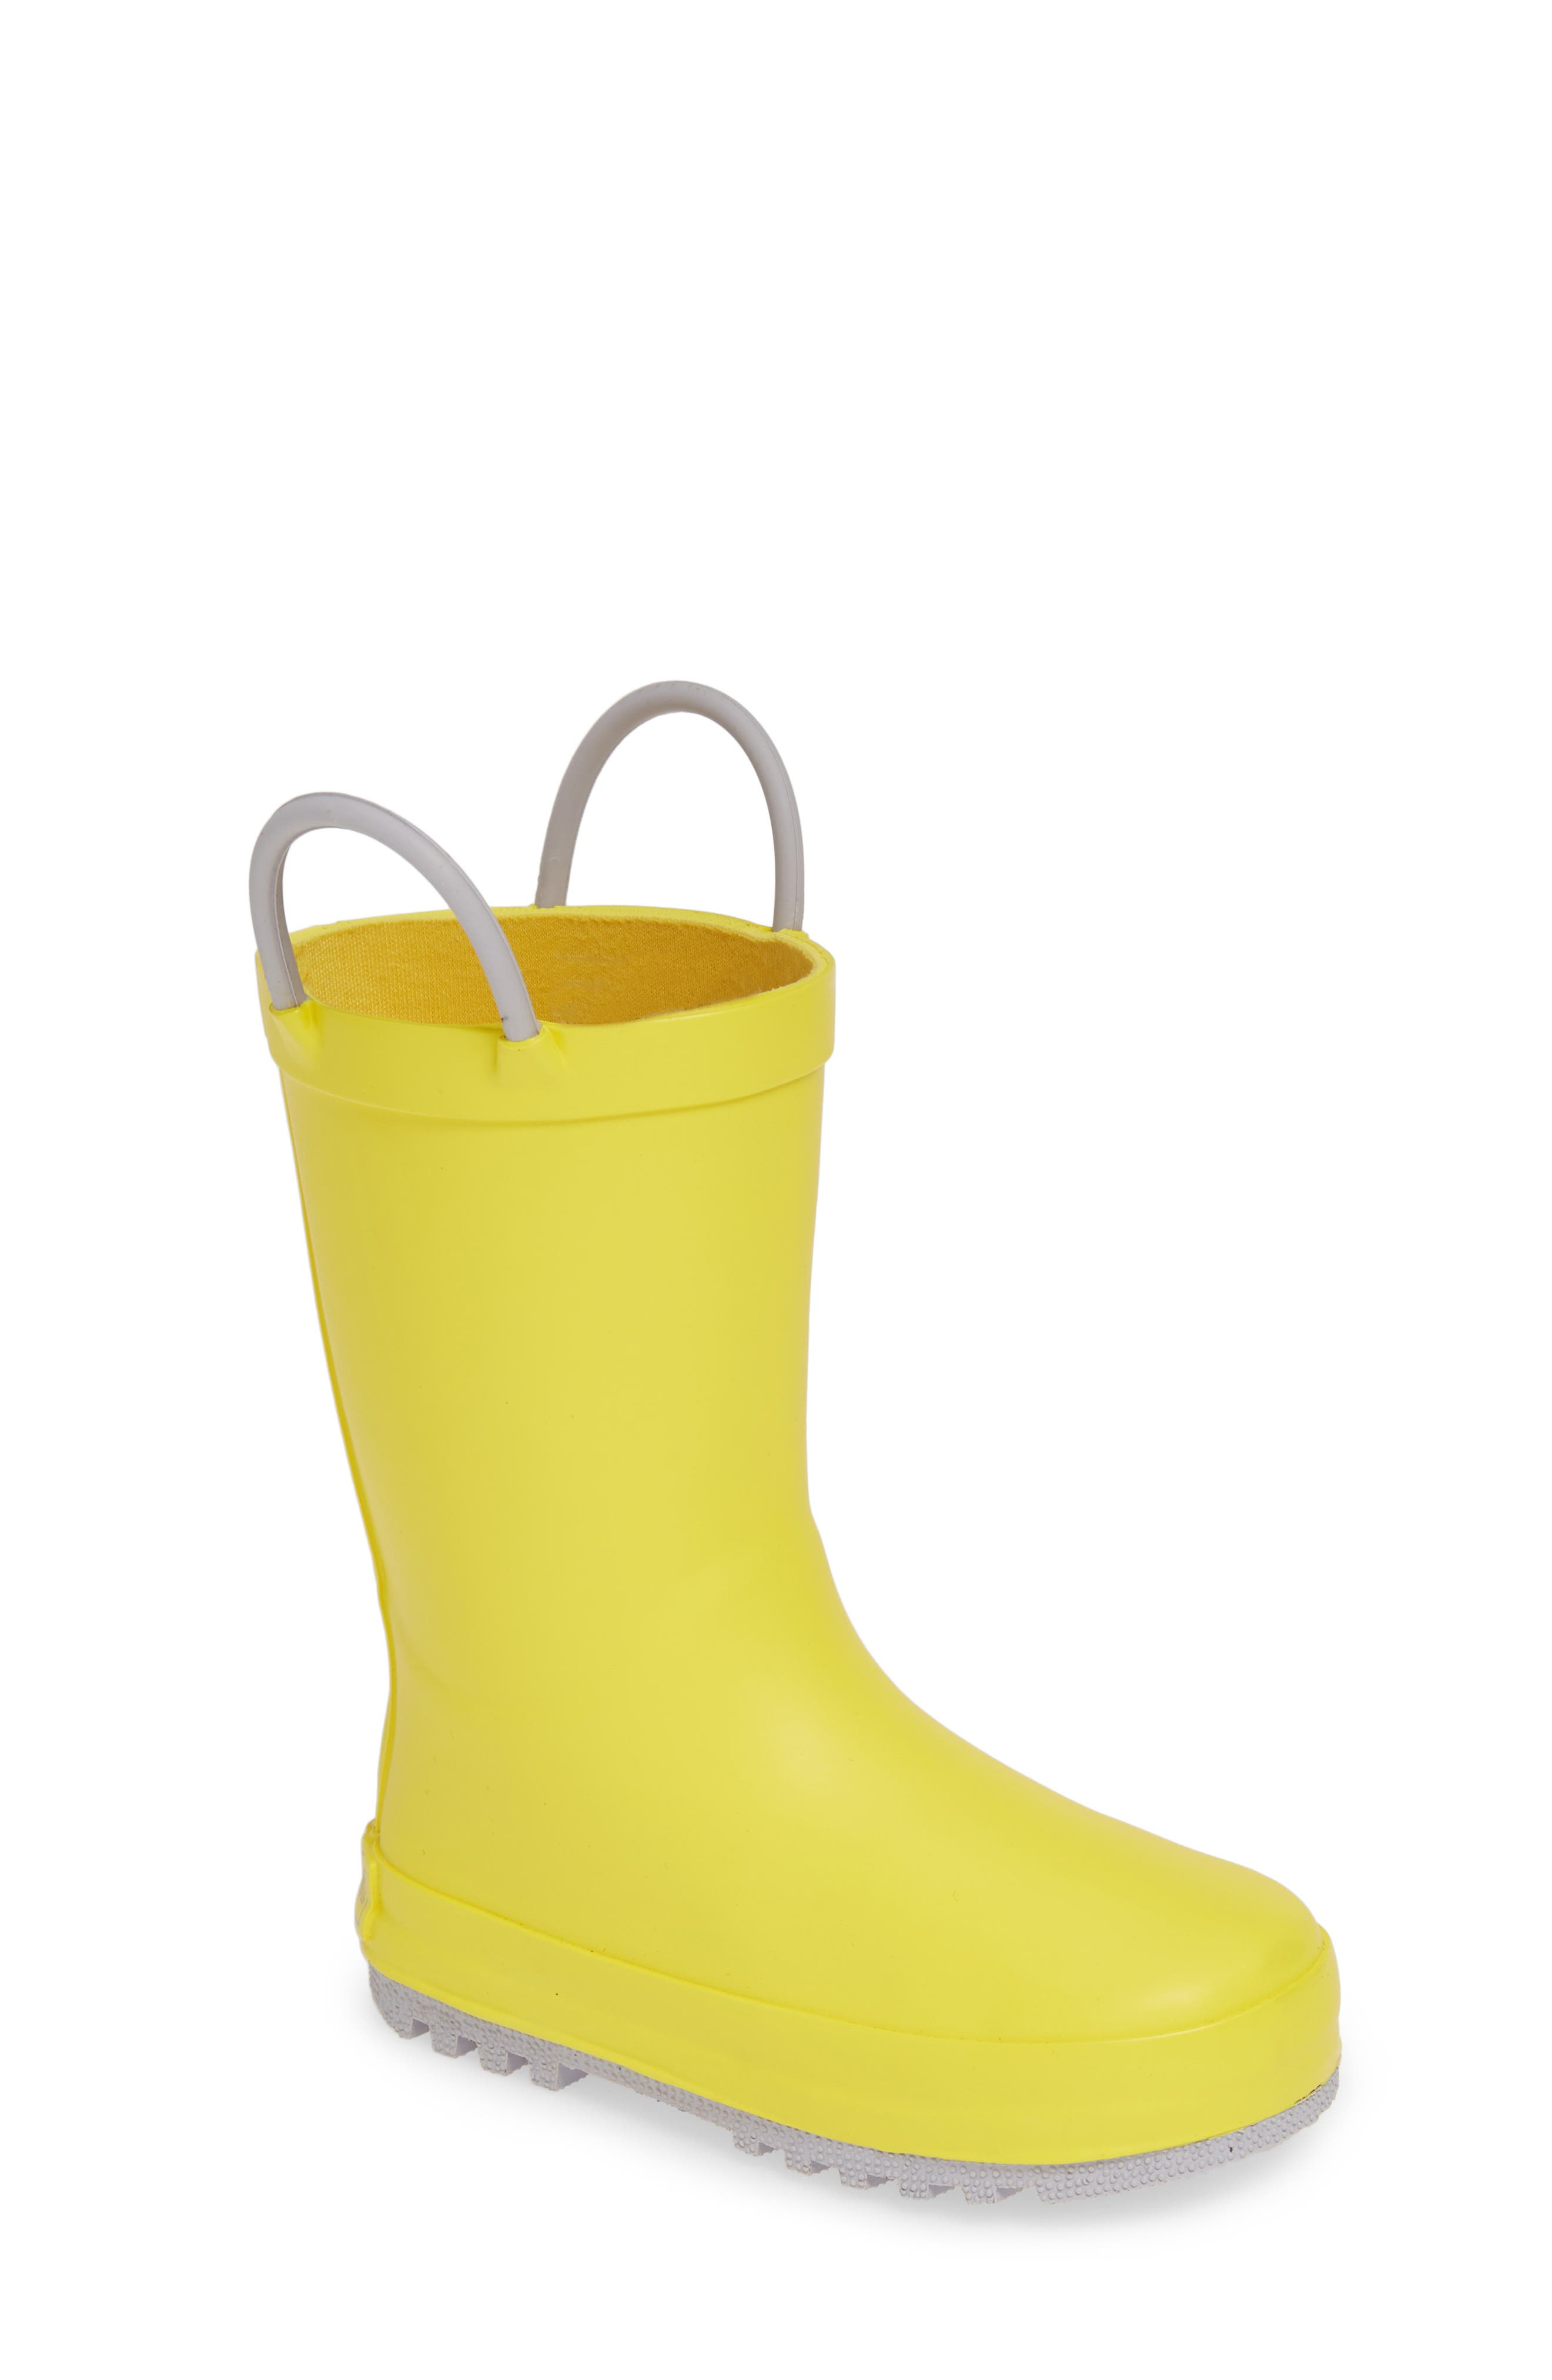 TUCKER + TATE Puddle Rain Boot, Main, color, YELLOW/ GREY RUBBER